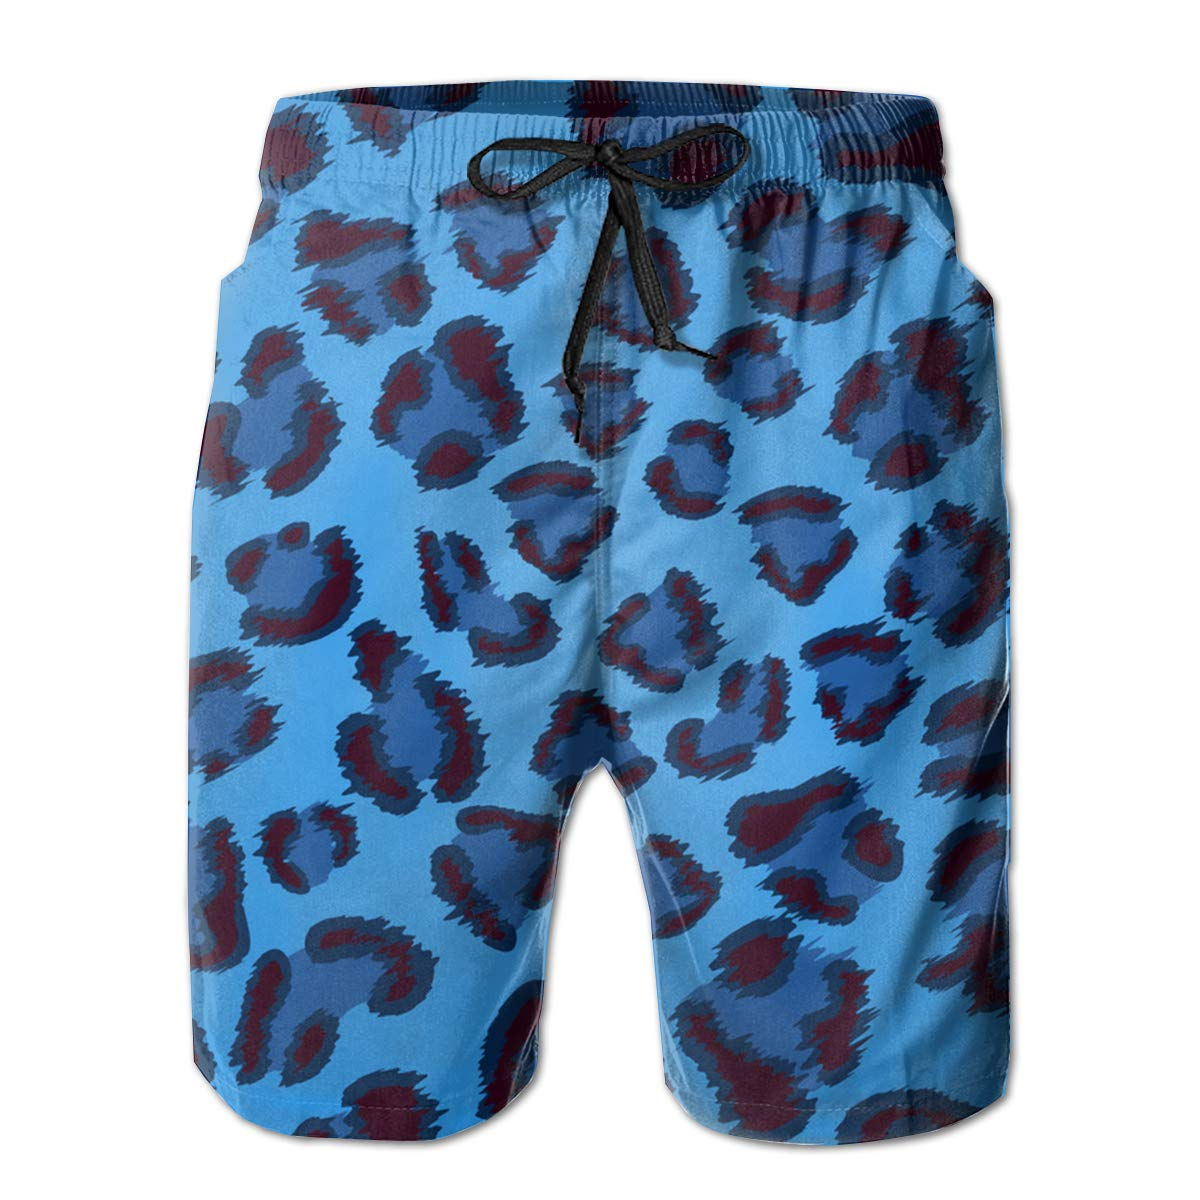 TR2YU7YT Blue Leopard Casual Mens Swim Trunks Quick Dry Printed Beach Shorts Summer Boardshorts Bathing Suits with Mesh Lining